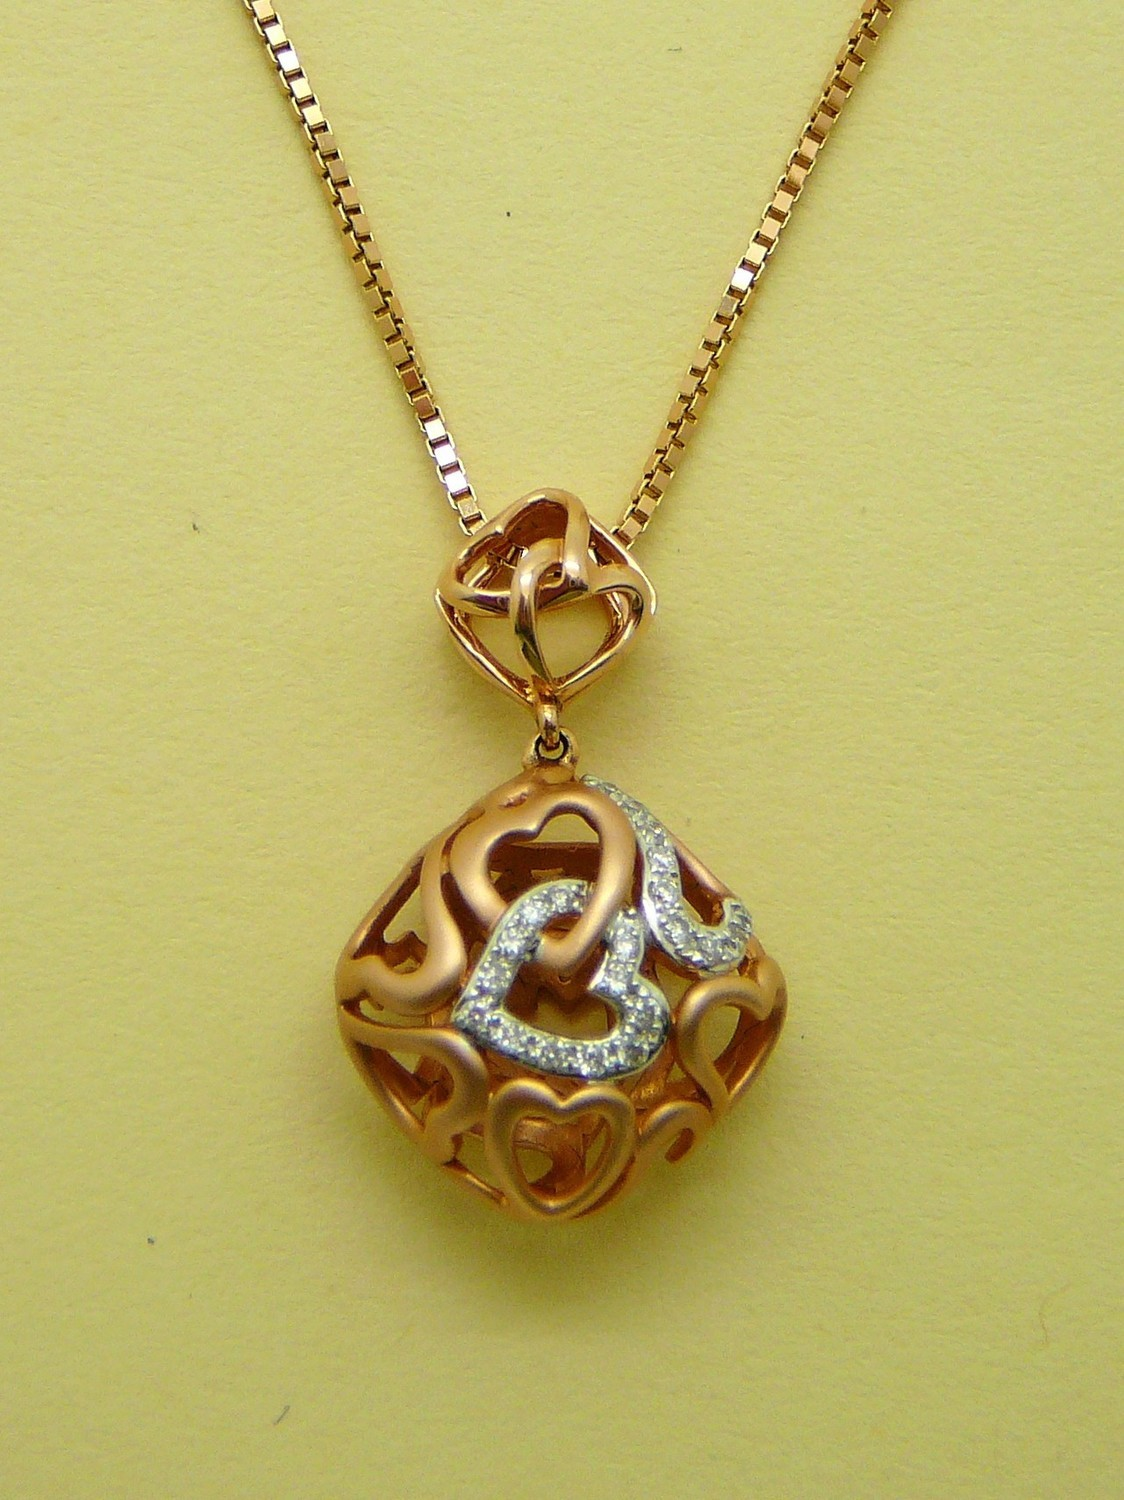 INTERLOCKING HEART Rose Gold & Dia. Chain Sold Separately